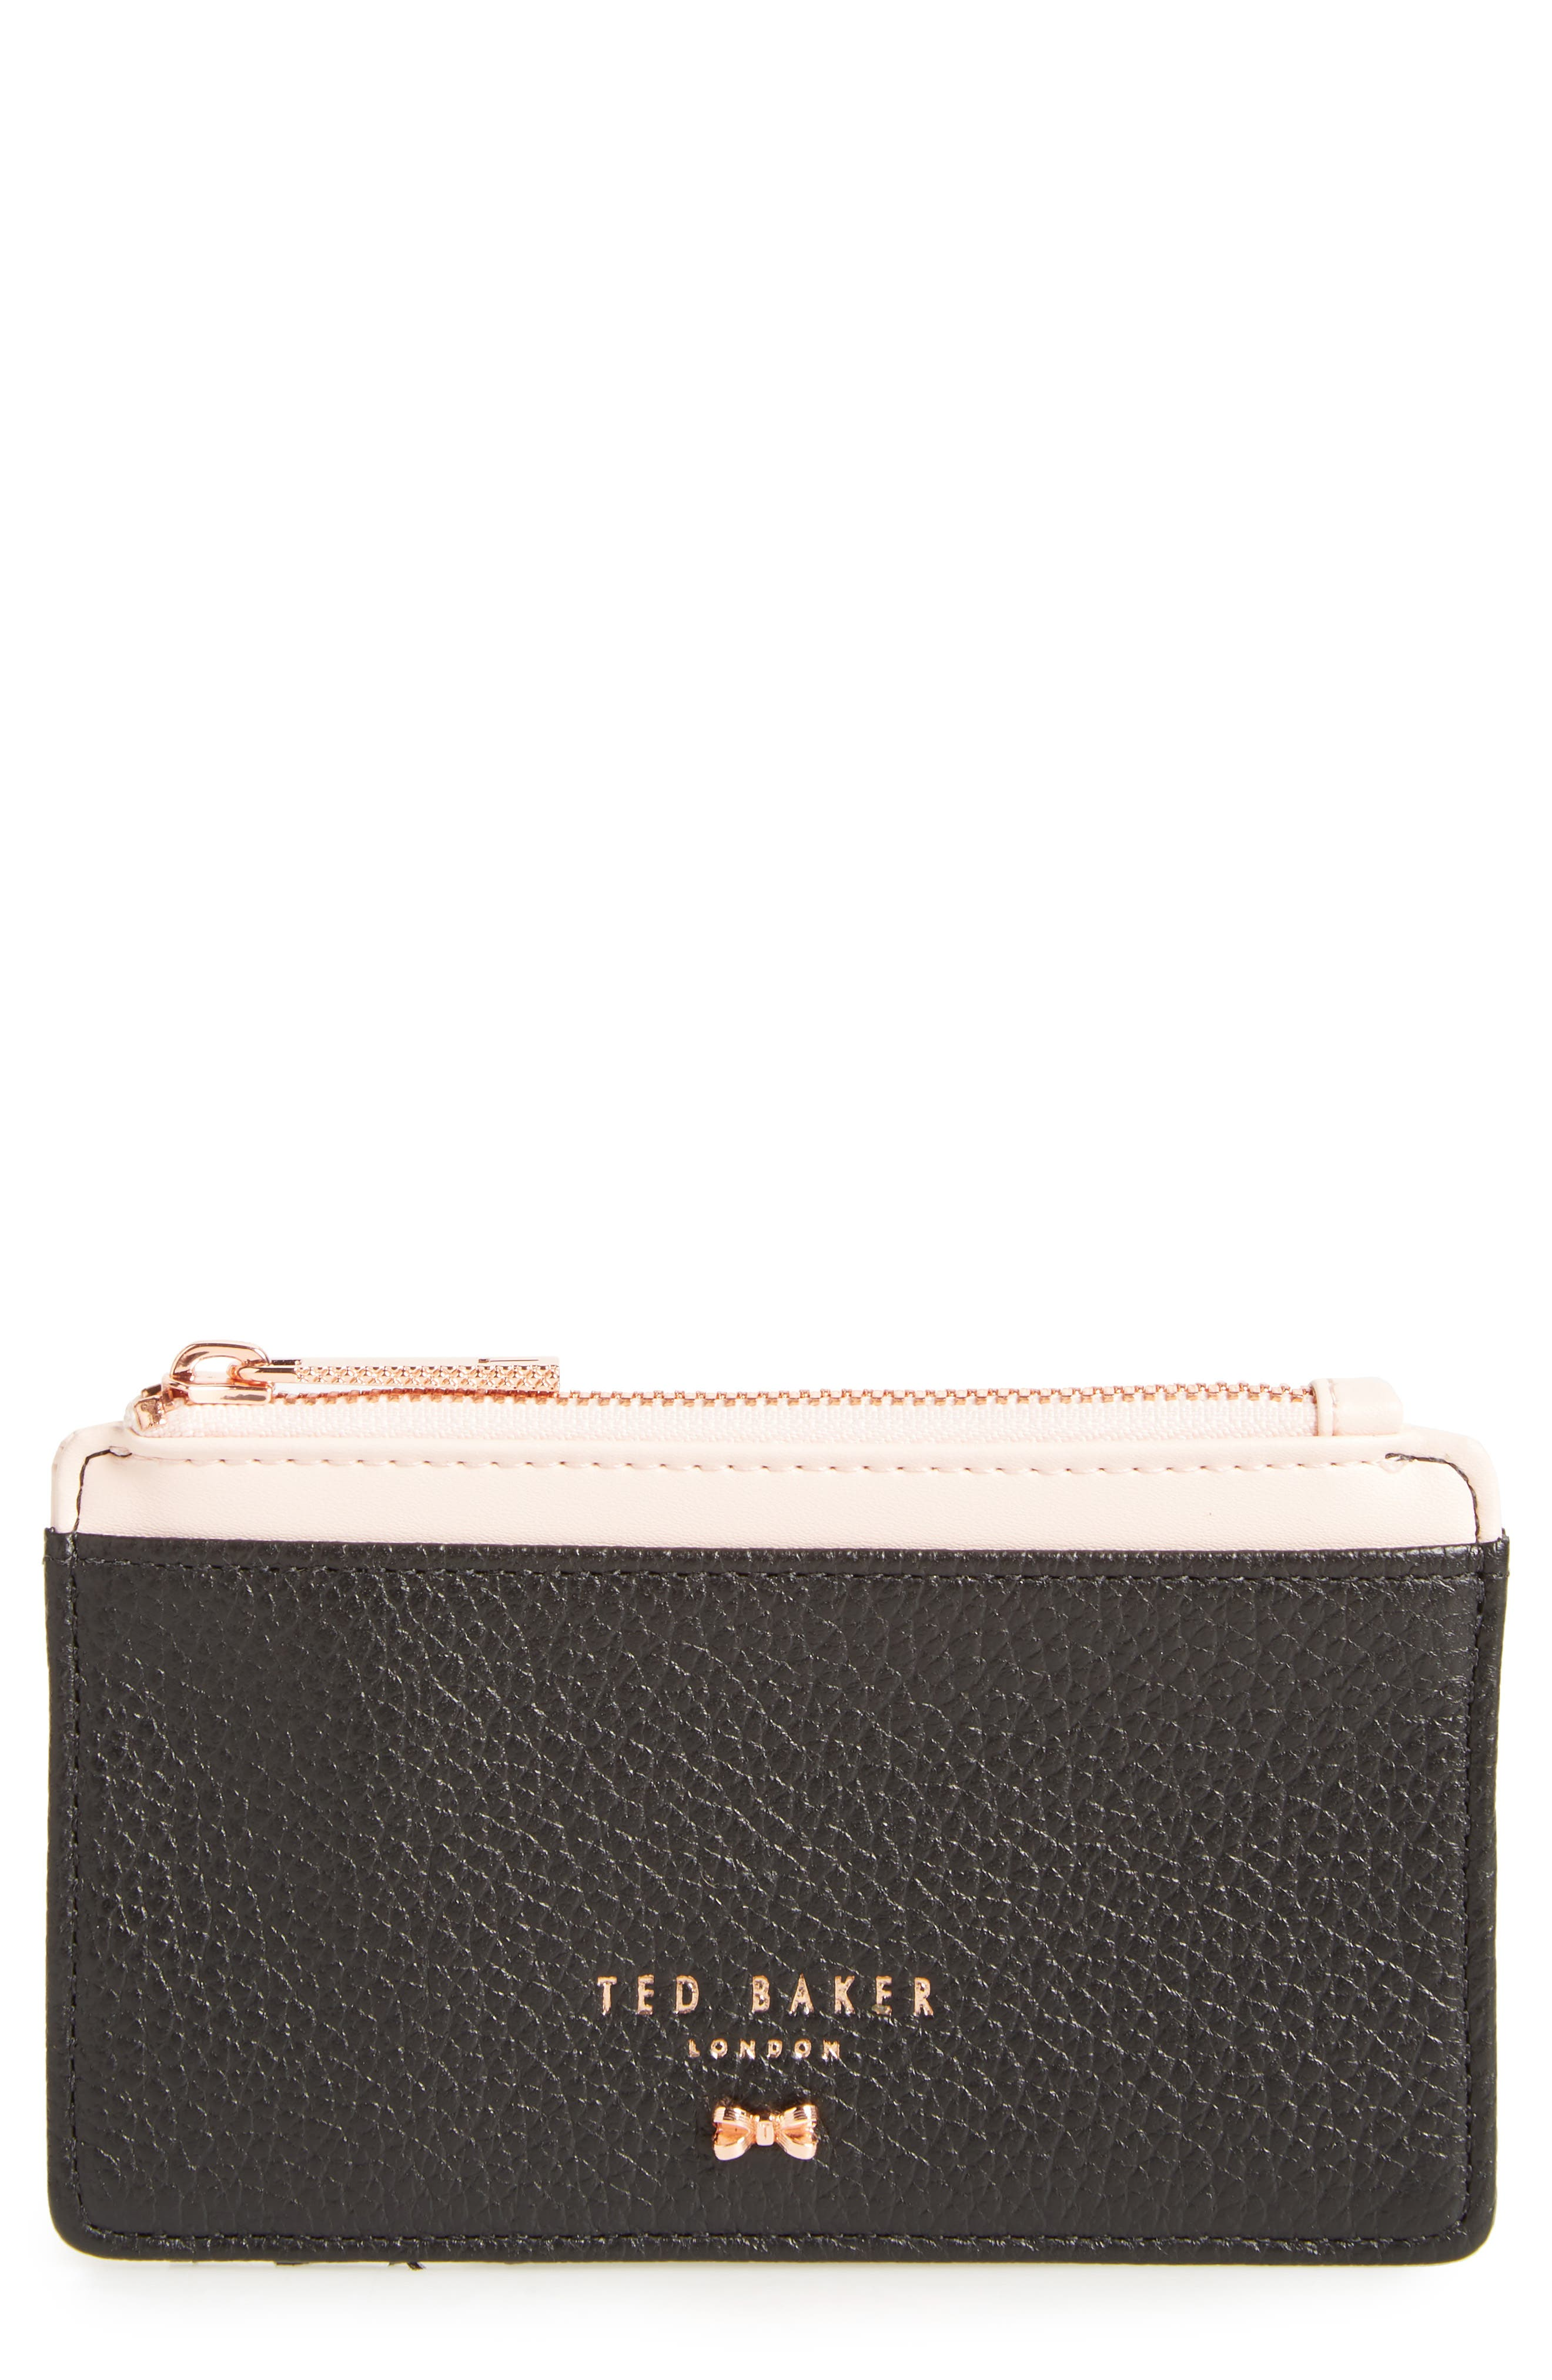 Alica Top Zip Leather Card Case,                             Main thumbnail 1, color,                             001